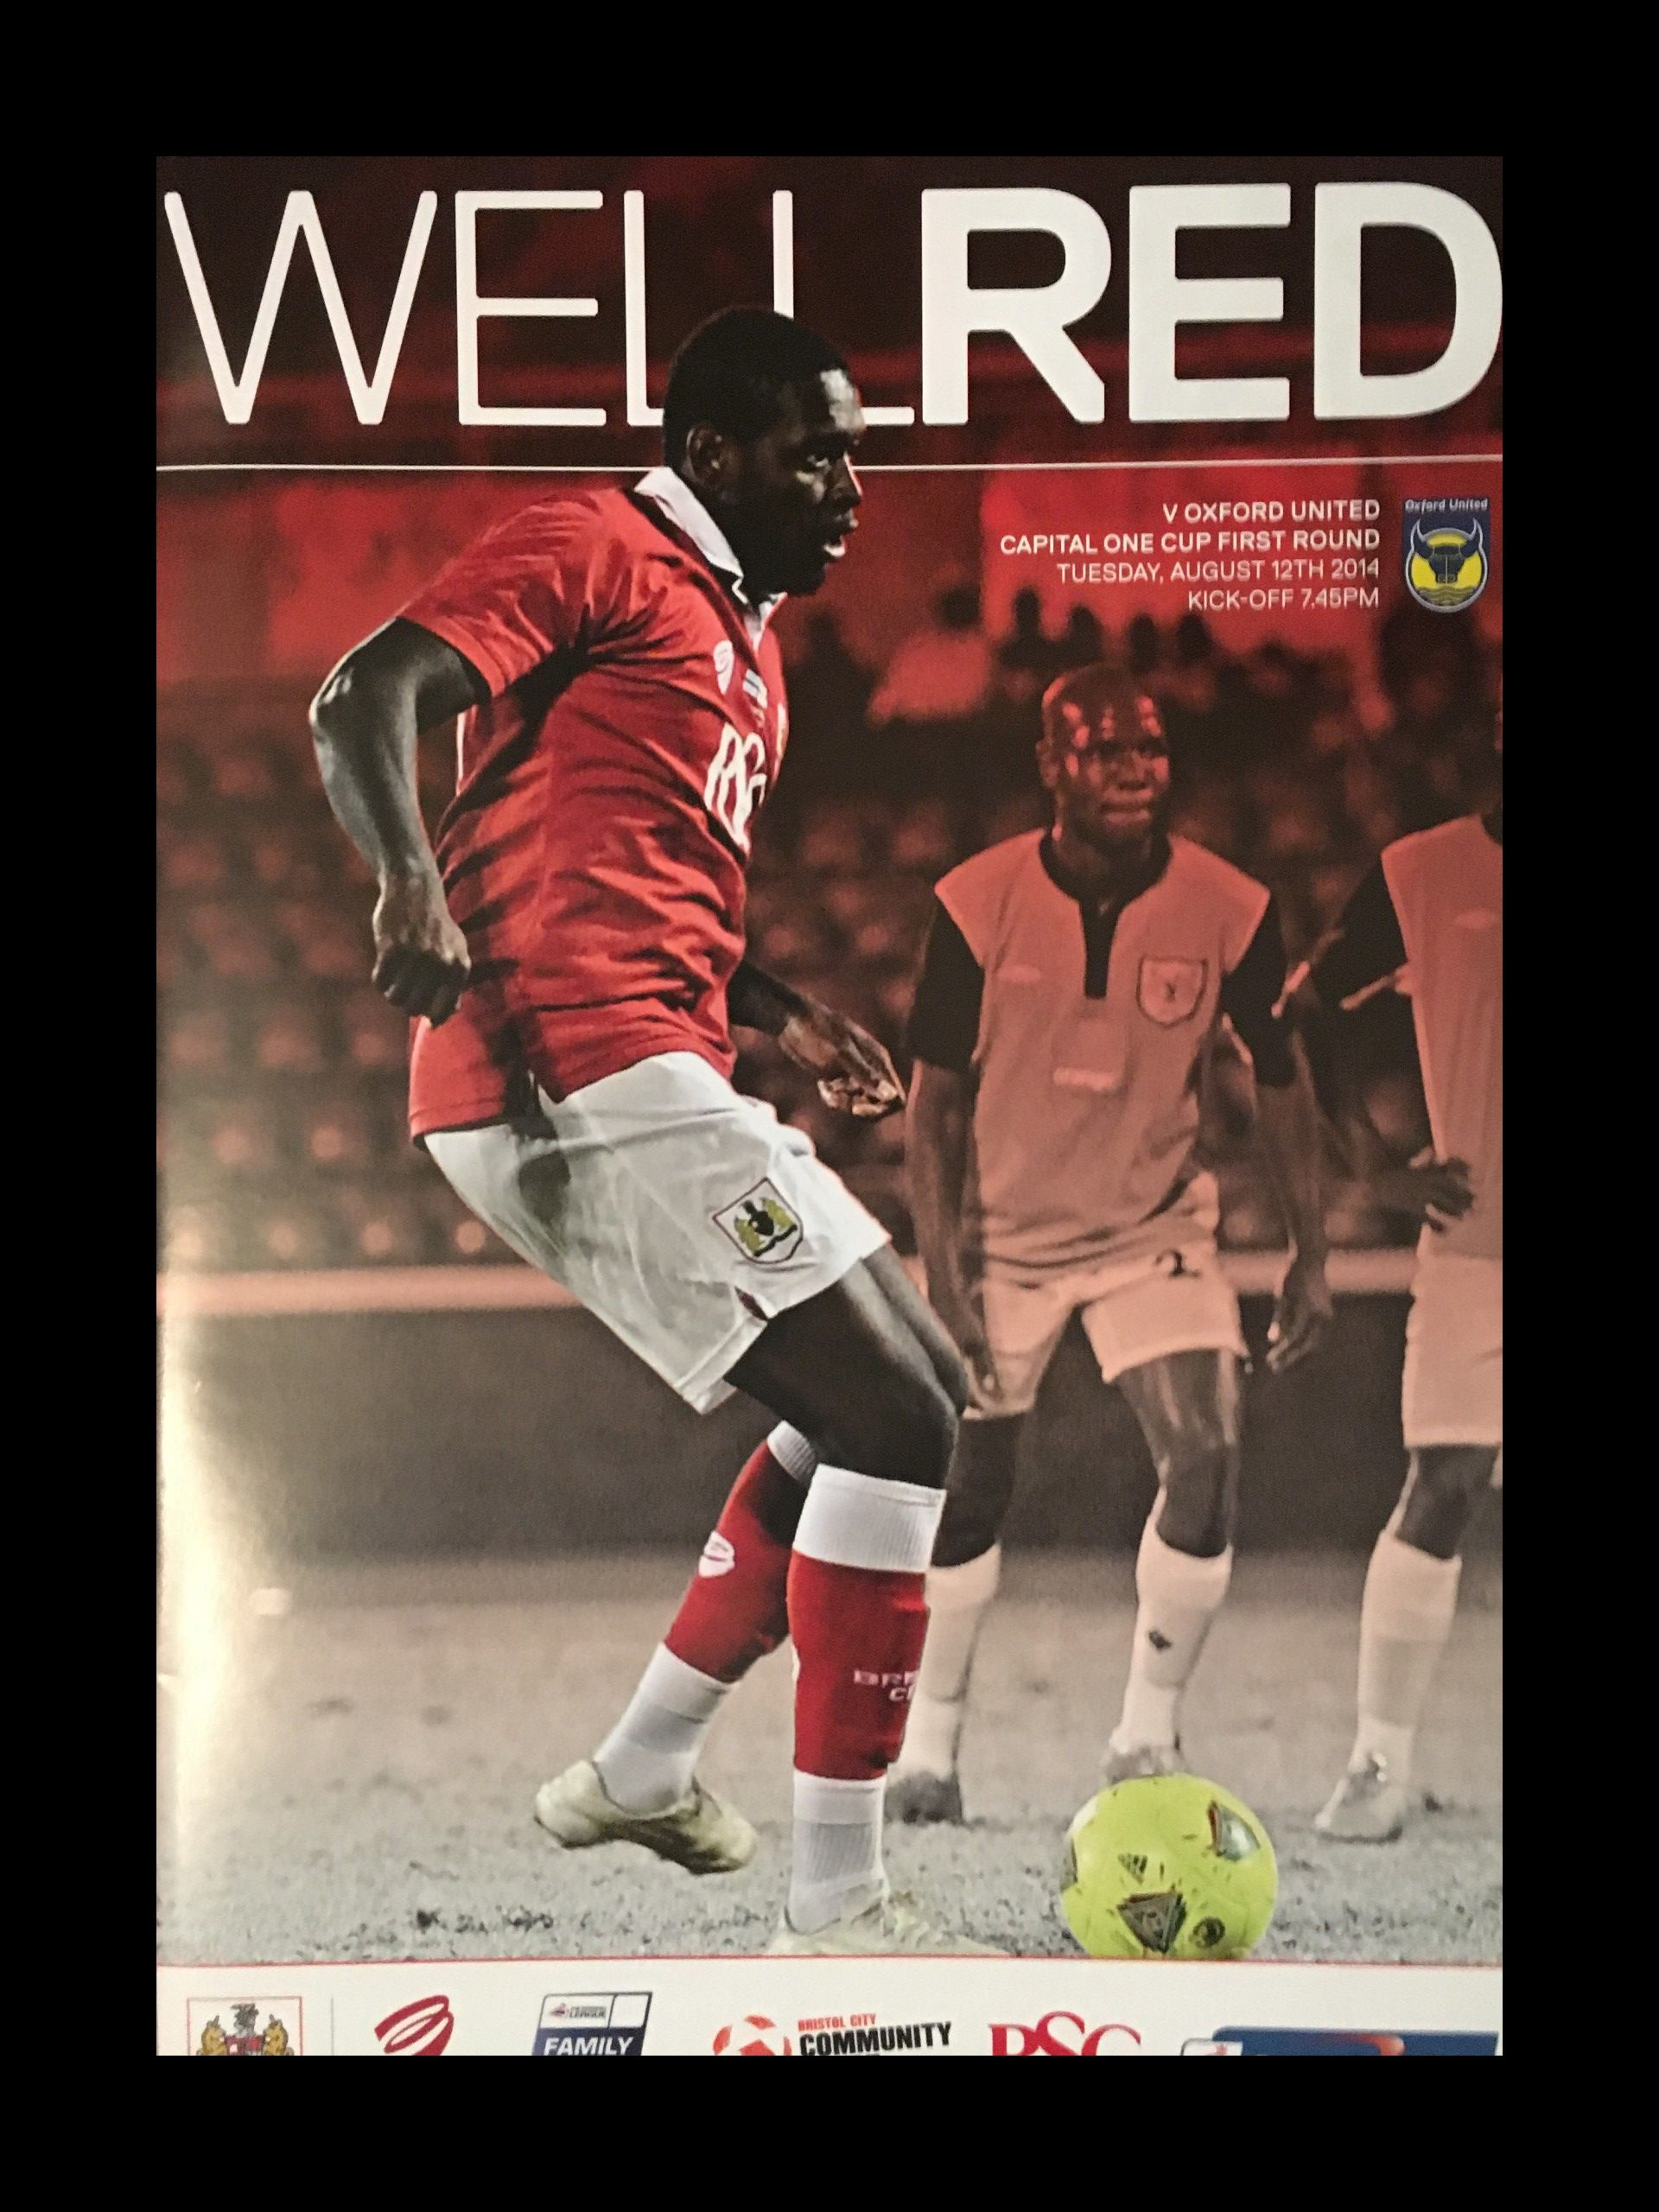 Bristol City v Oxford United 12-08-2014 Programme